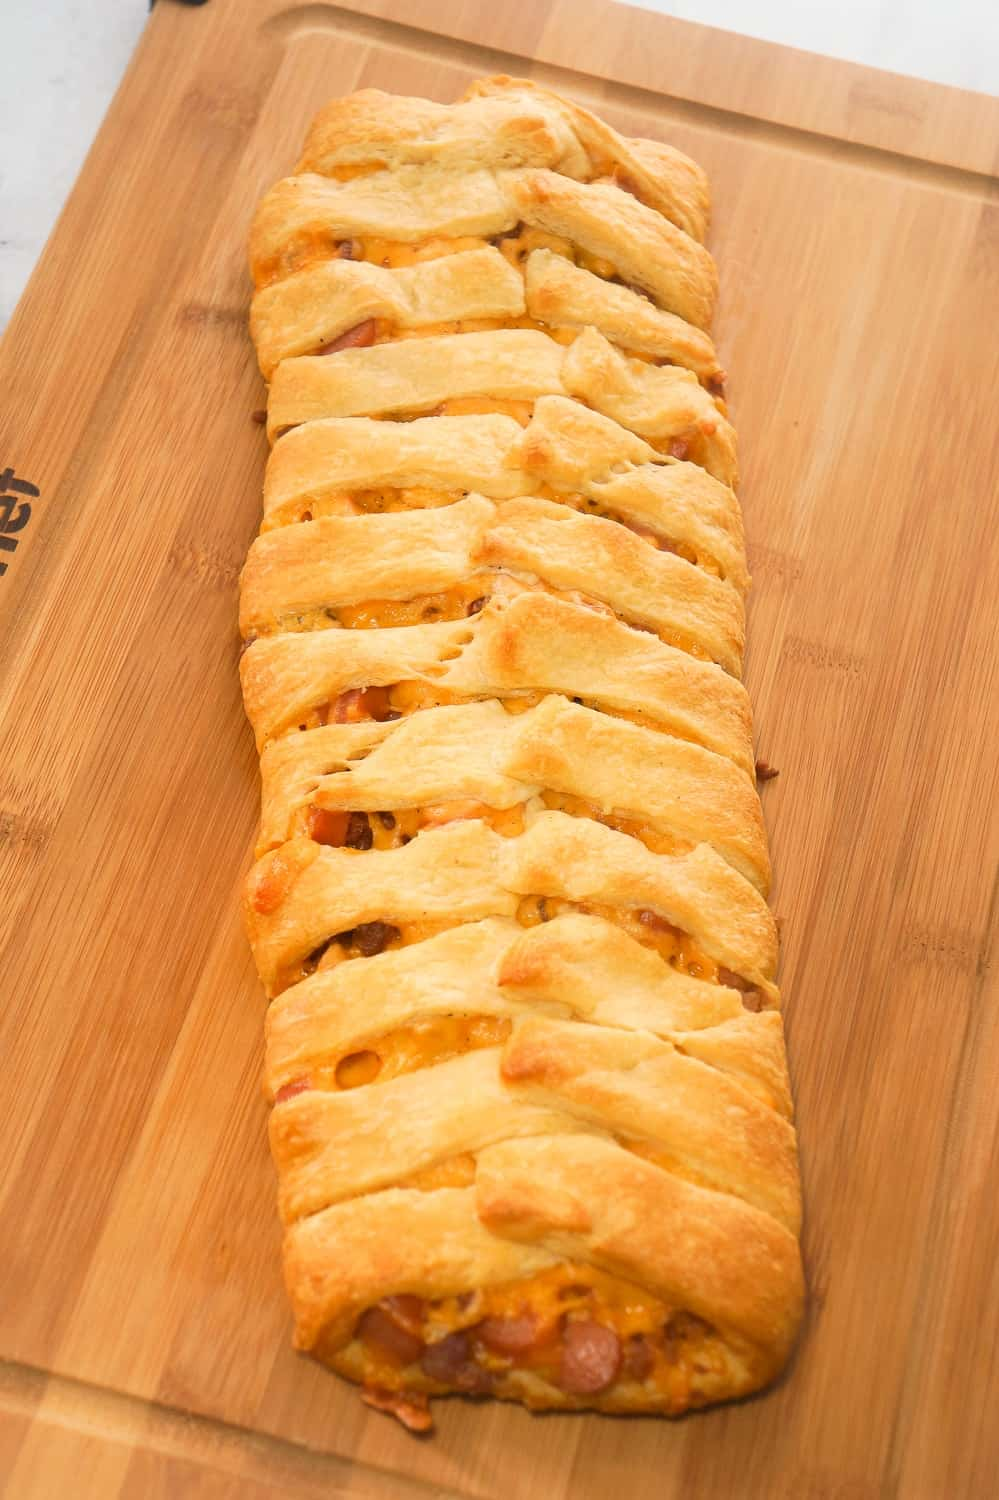 Bacon Cheese Dog Crescent Braid is an easy weeknight dinner recipe. This crescent bake is stuffed with wieners, bacon and cheese then topped with chili to make it a hearty comfort food dish.